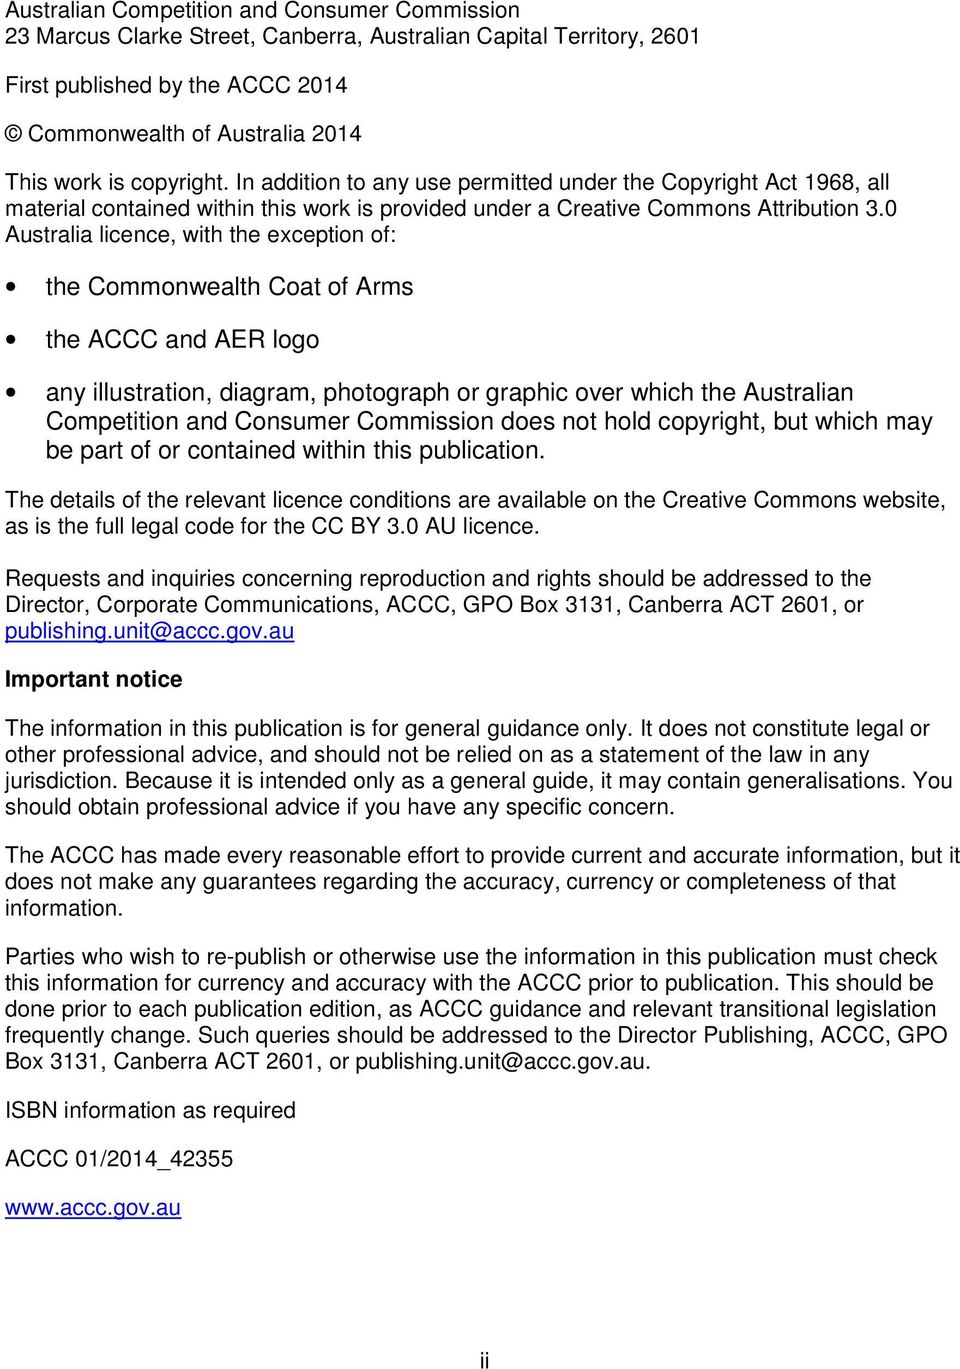 0 Australia licence, with the exception of: the Commonwealth Coat of Arms the ACCC and AER logo any illustration, diagram, photograph or graphic over which the Australian Competition and Consumer